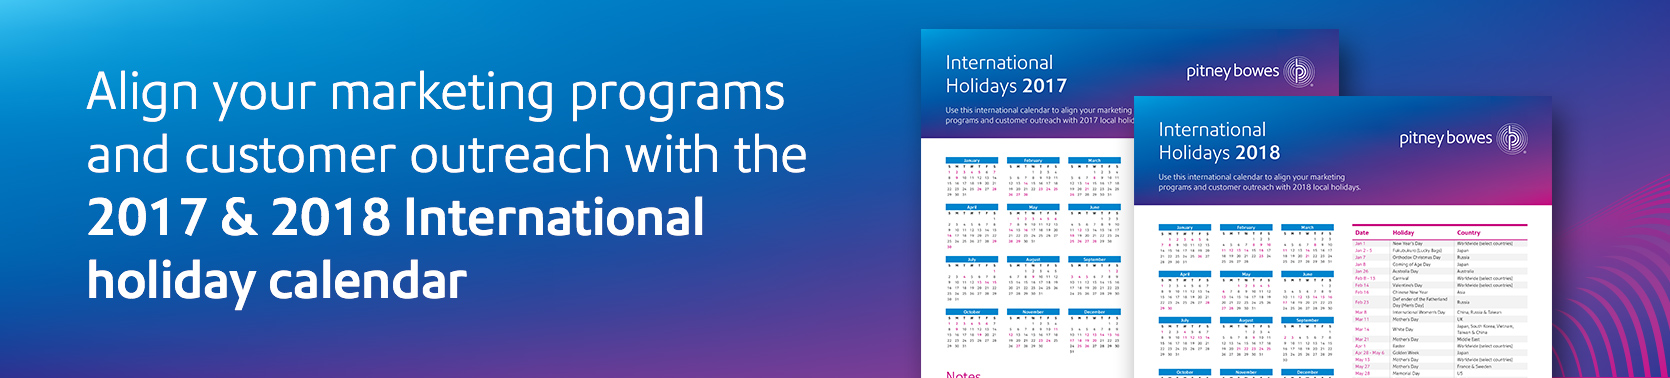 2017 & 2018 International Holiday Calendar